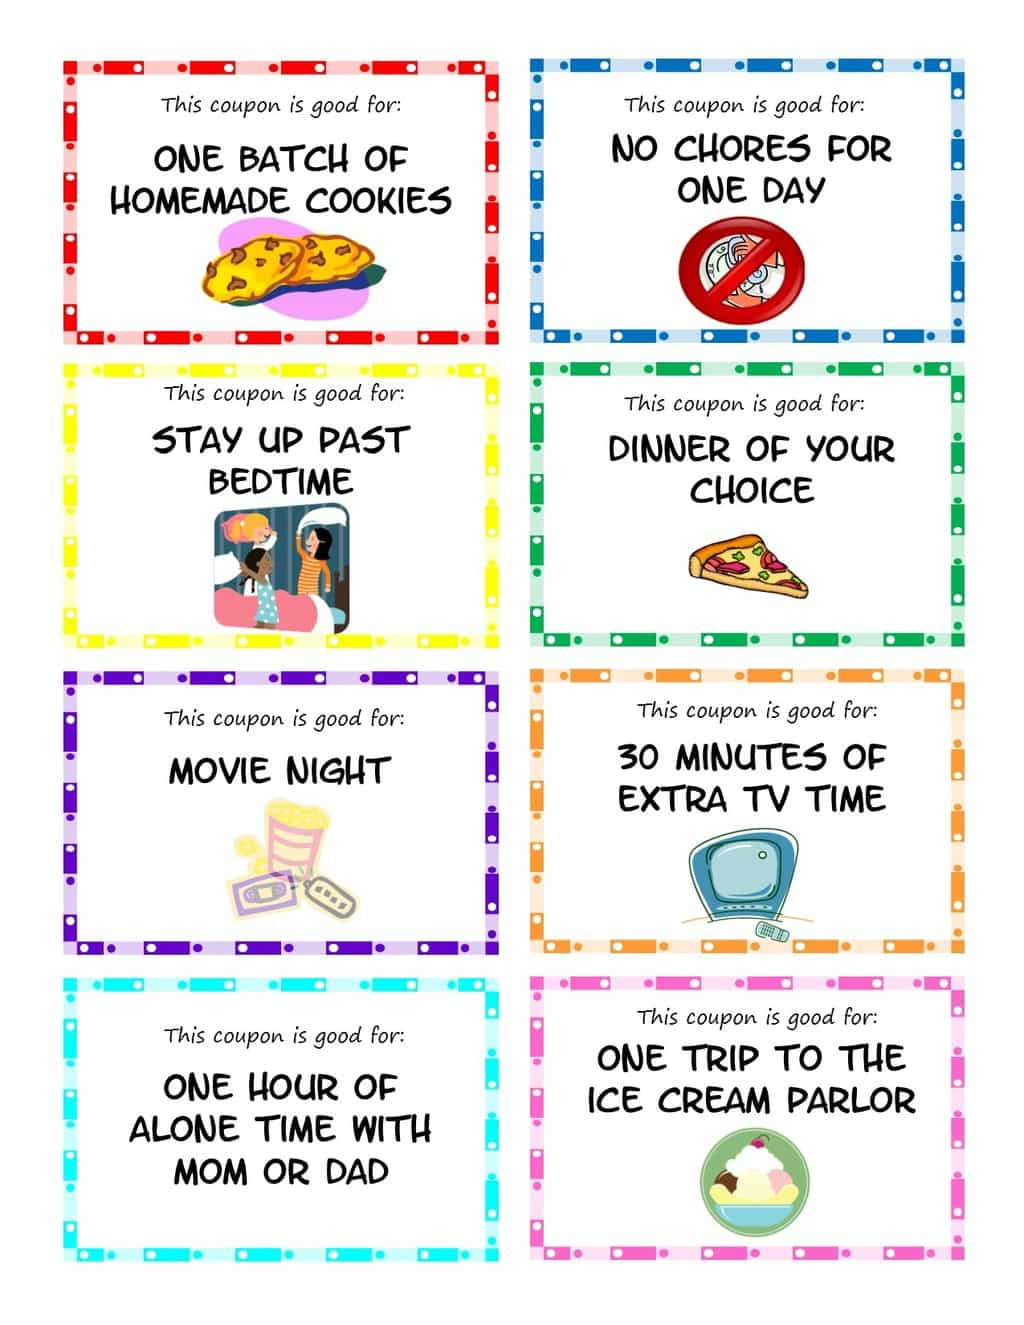 Printable kid coupons to use as stocking stuffers, rewards or small gifts for your kids. Easy, inexpensive gift idea for children. #printables #kidcoupons #forkids #stockingstuffers